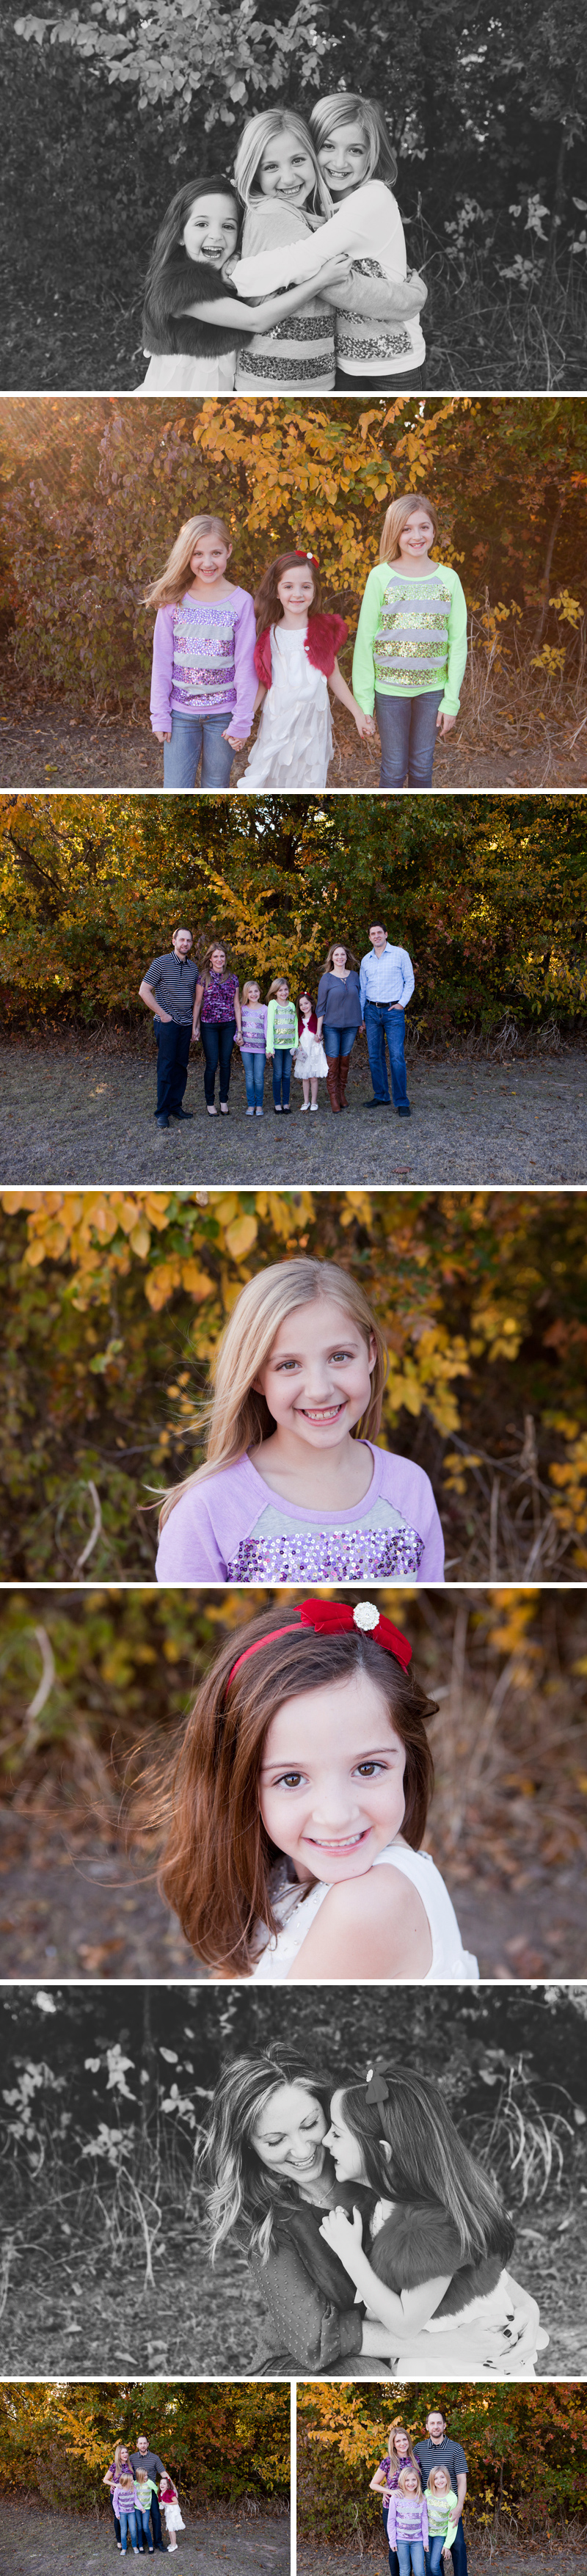 Dallas-Family-Photographerc056